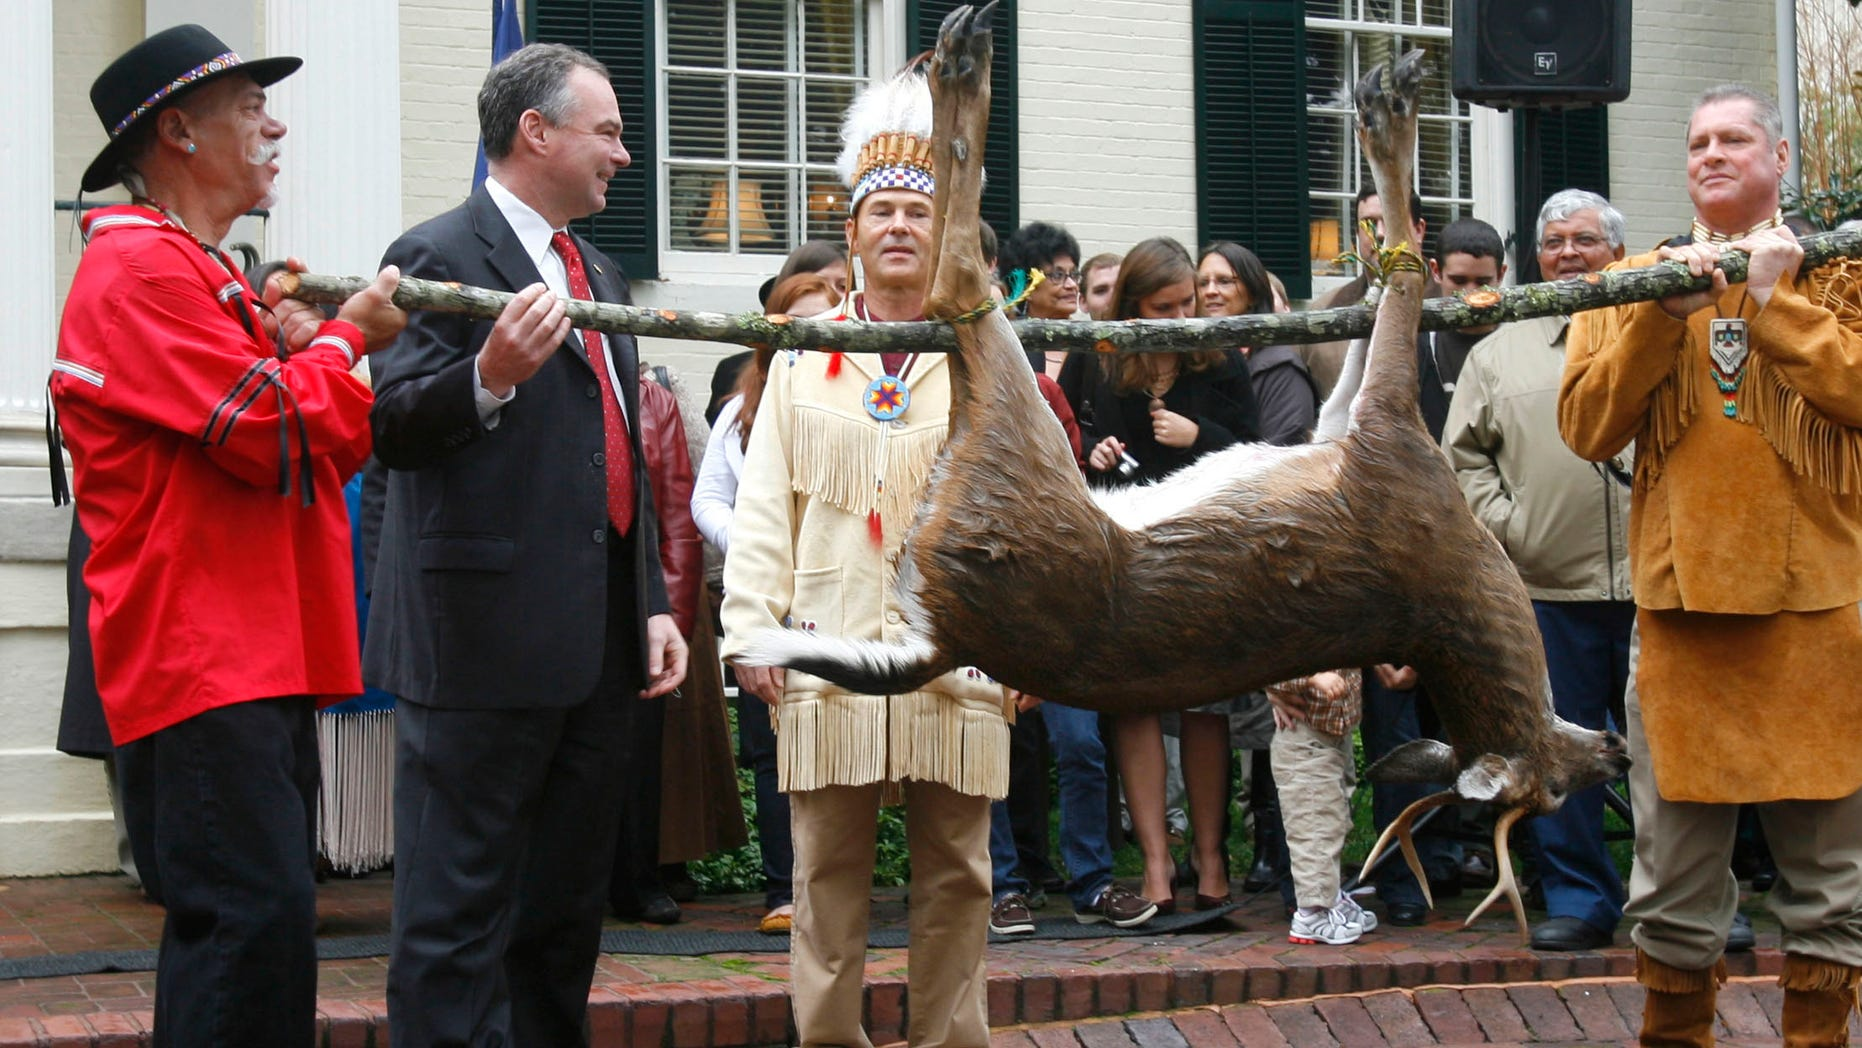 Nov. 25, 2009: Pamunkey Councilmen Jeff Brown, left, and Gary Miles, hold a deer as their Chief Kevin Brown presents it to Gov. Tim Kaine, second from left, during the annual tax tribute from the Virginia Indians to the Virginia governor. Several members of the Congressional Black Caucus are urging the Obama administration to withhold federal recognition of the Pamunkey tribe in southeast Virginia because of its history of banning intermarriage with blacks.